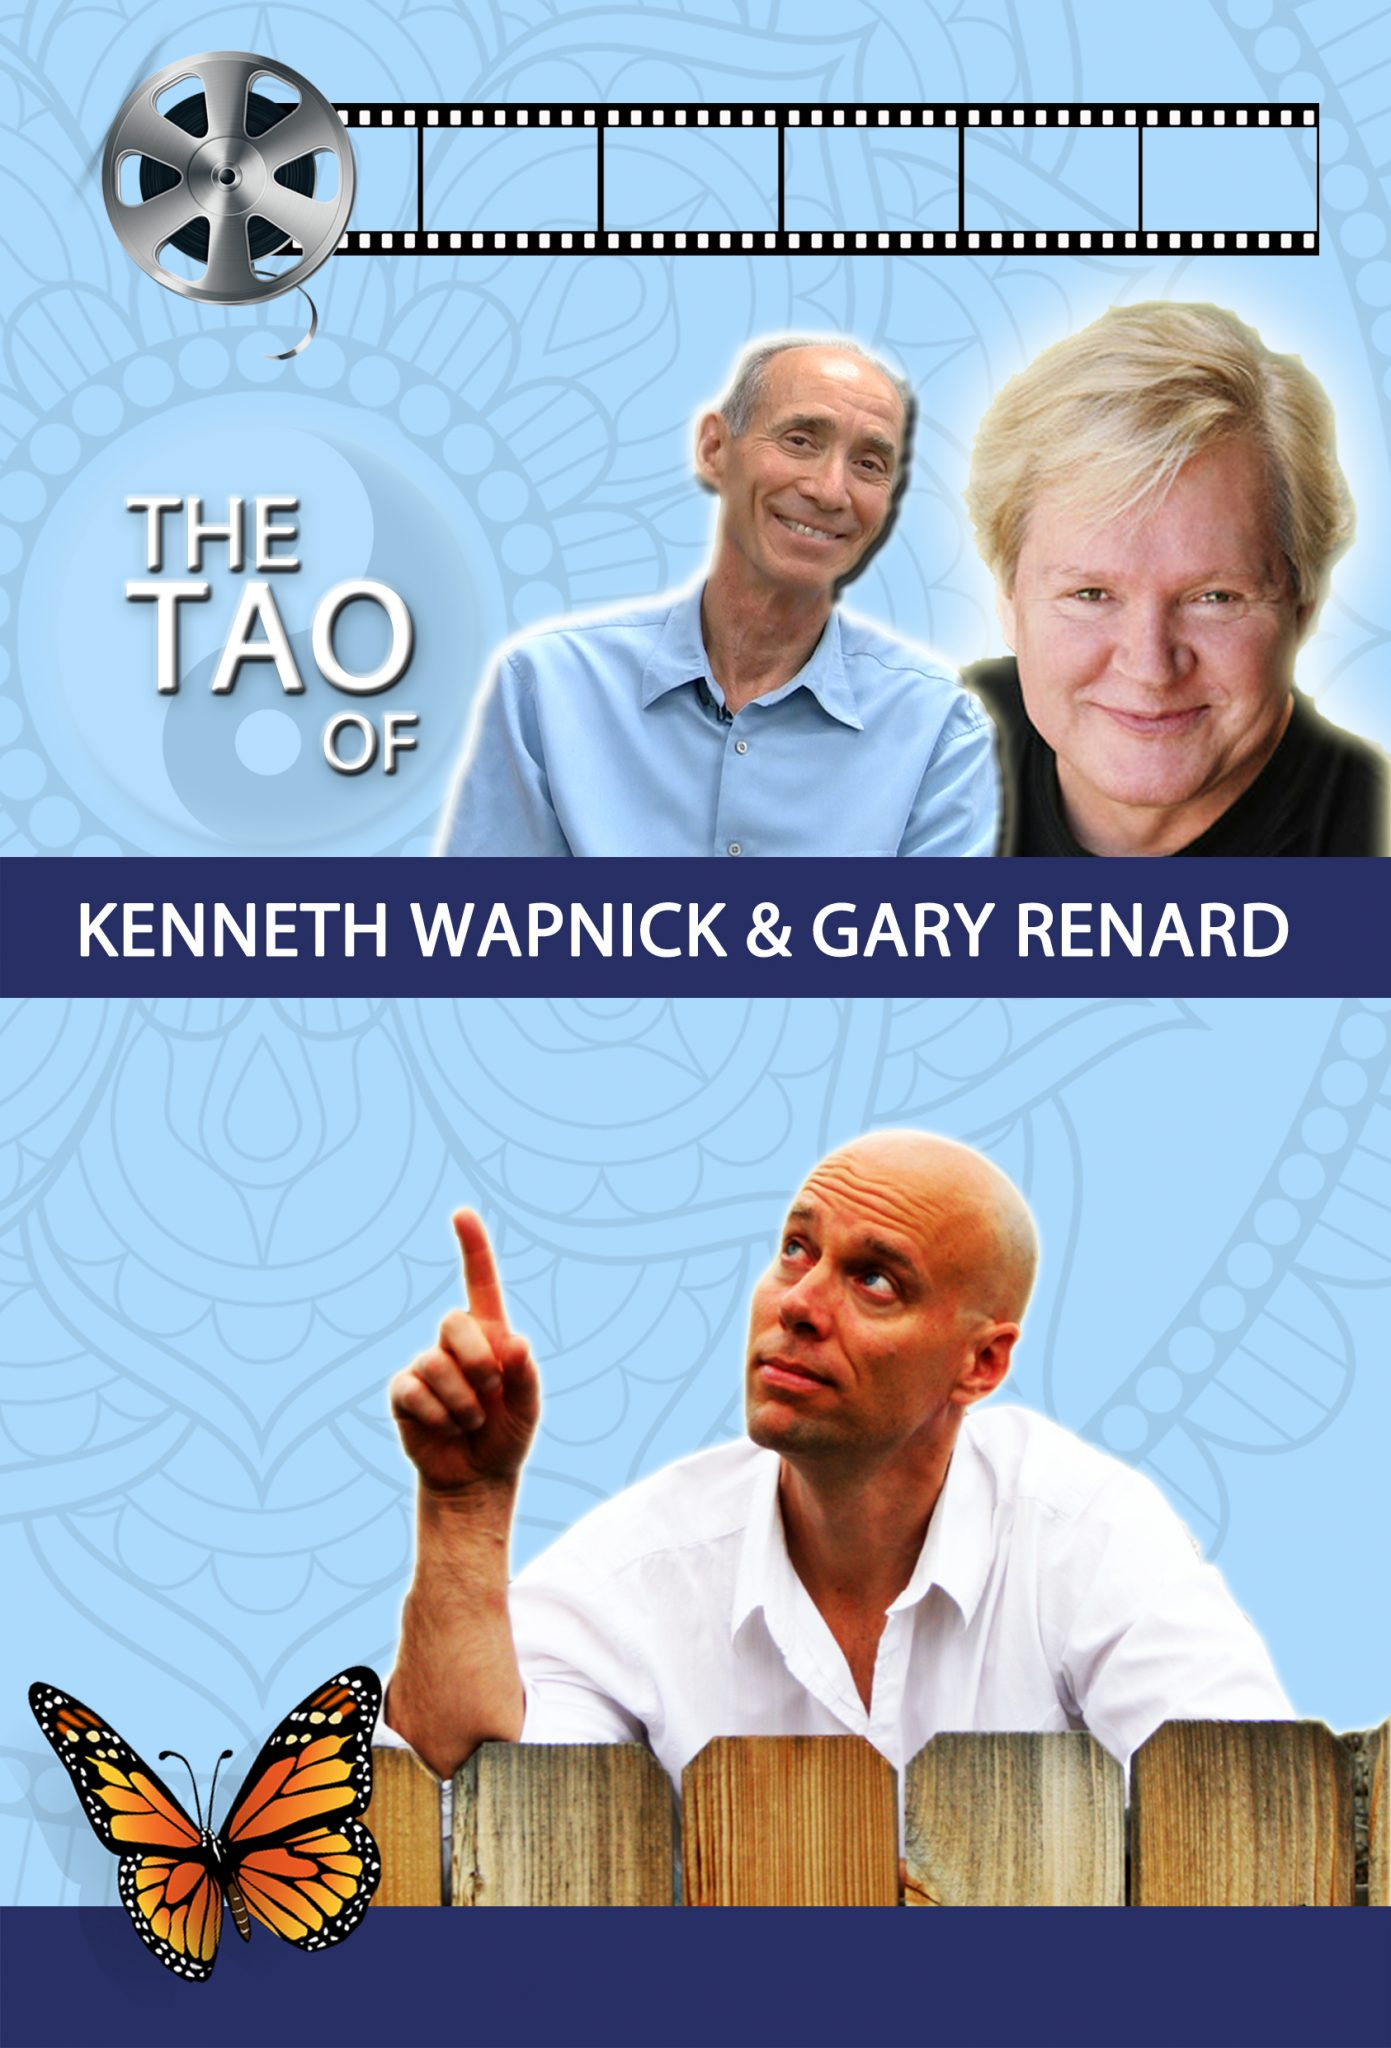 Tao of Kenneth Wapnick & Gary Renard Film - Digital Download